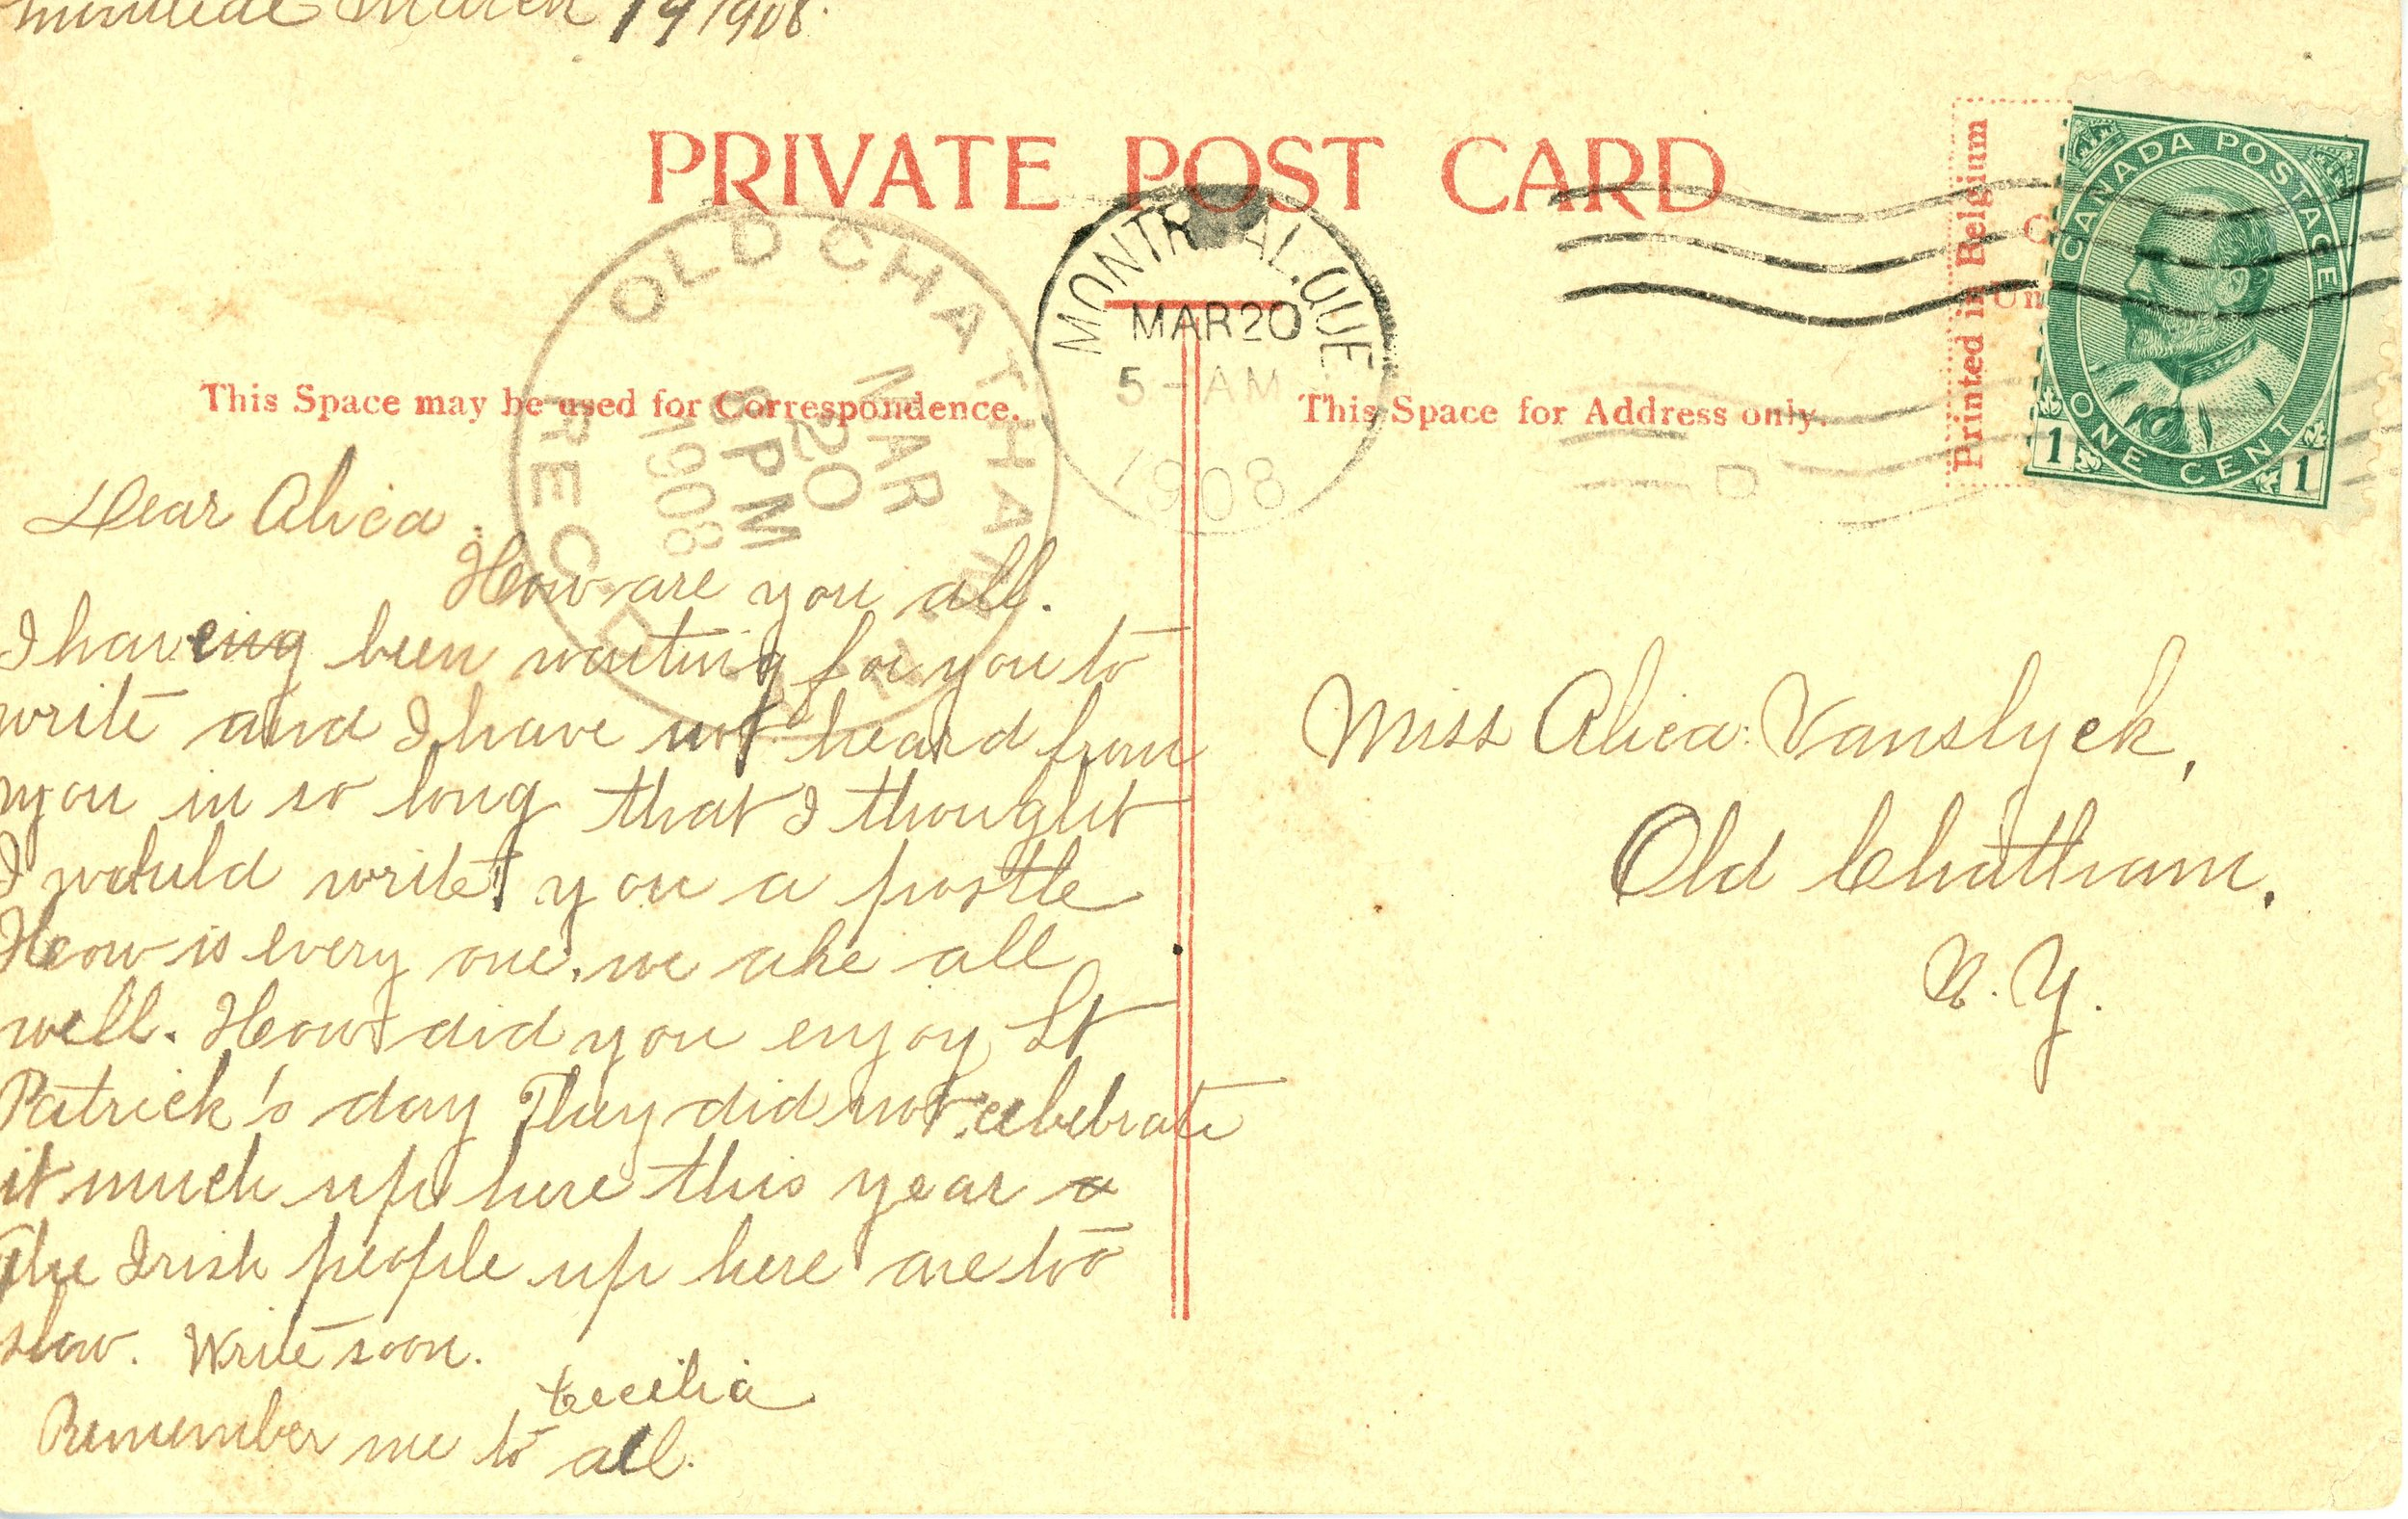 """Sent from Montreal, QC, on March 20, 1908 to Old Chatam, NY.  """"Dear Alicia, How are you all. I have been waiting for you to write and I have not heard from you in so long that I thought I would write you a postle. How is every one. We are all well. How did you enjoy St Patrick's day. They did not celebrate it much up here this year. The Irish people up here are too slow. Write soon. Remember me to all - Cecelia."""""""